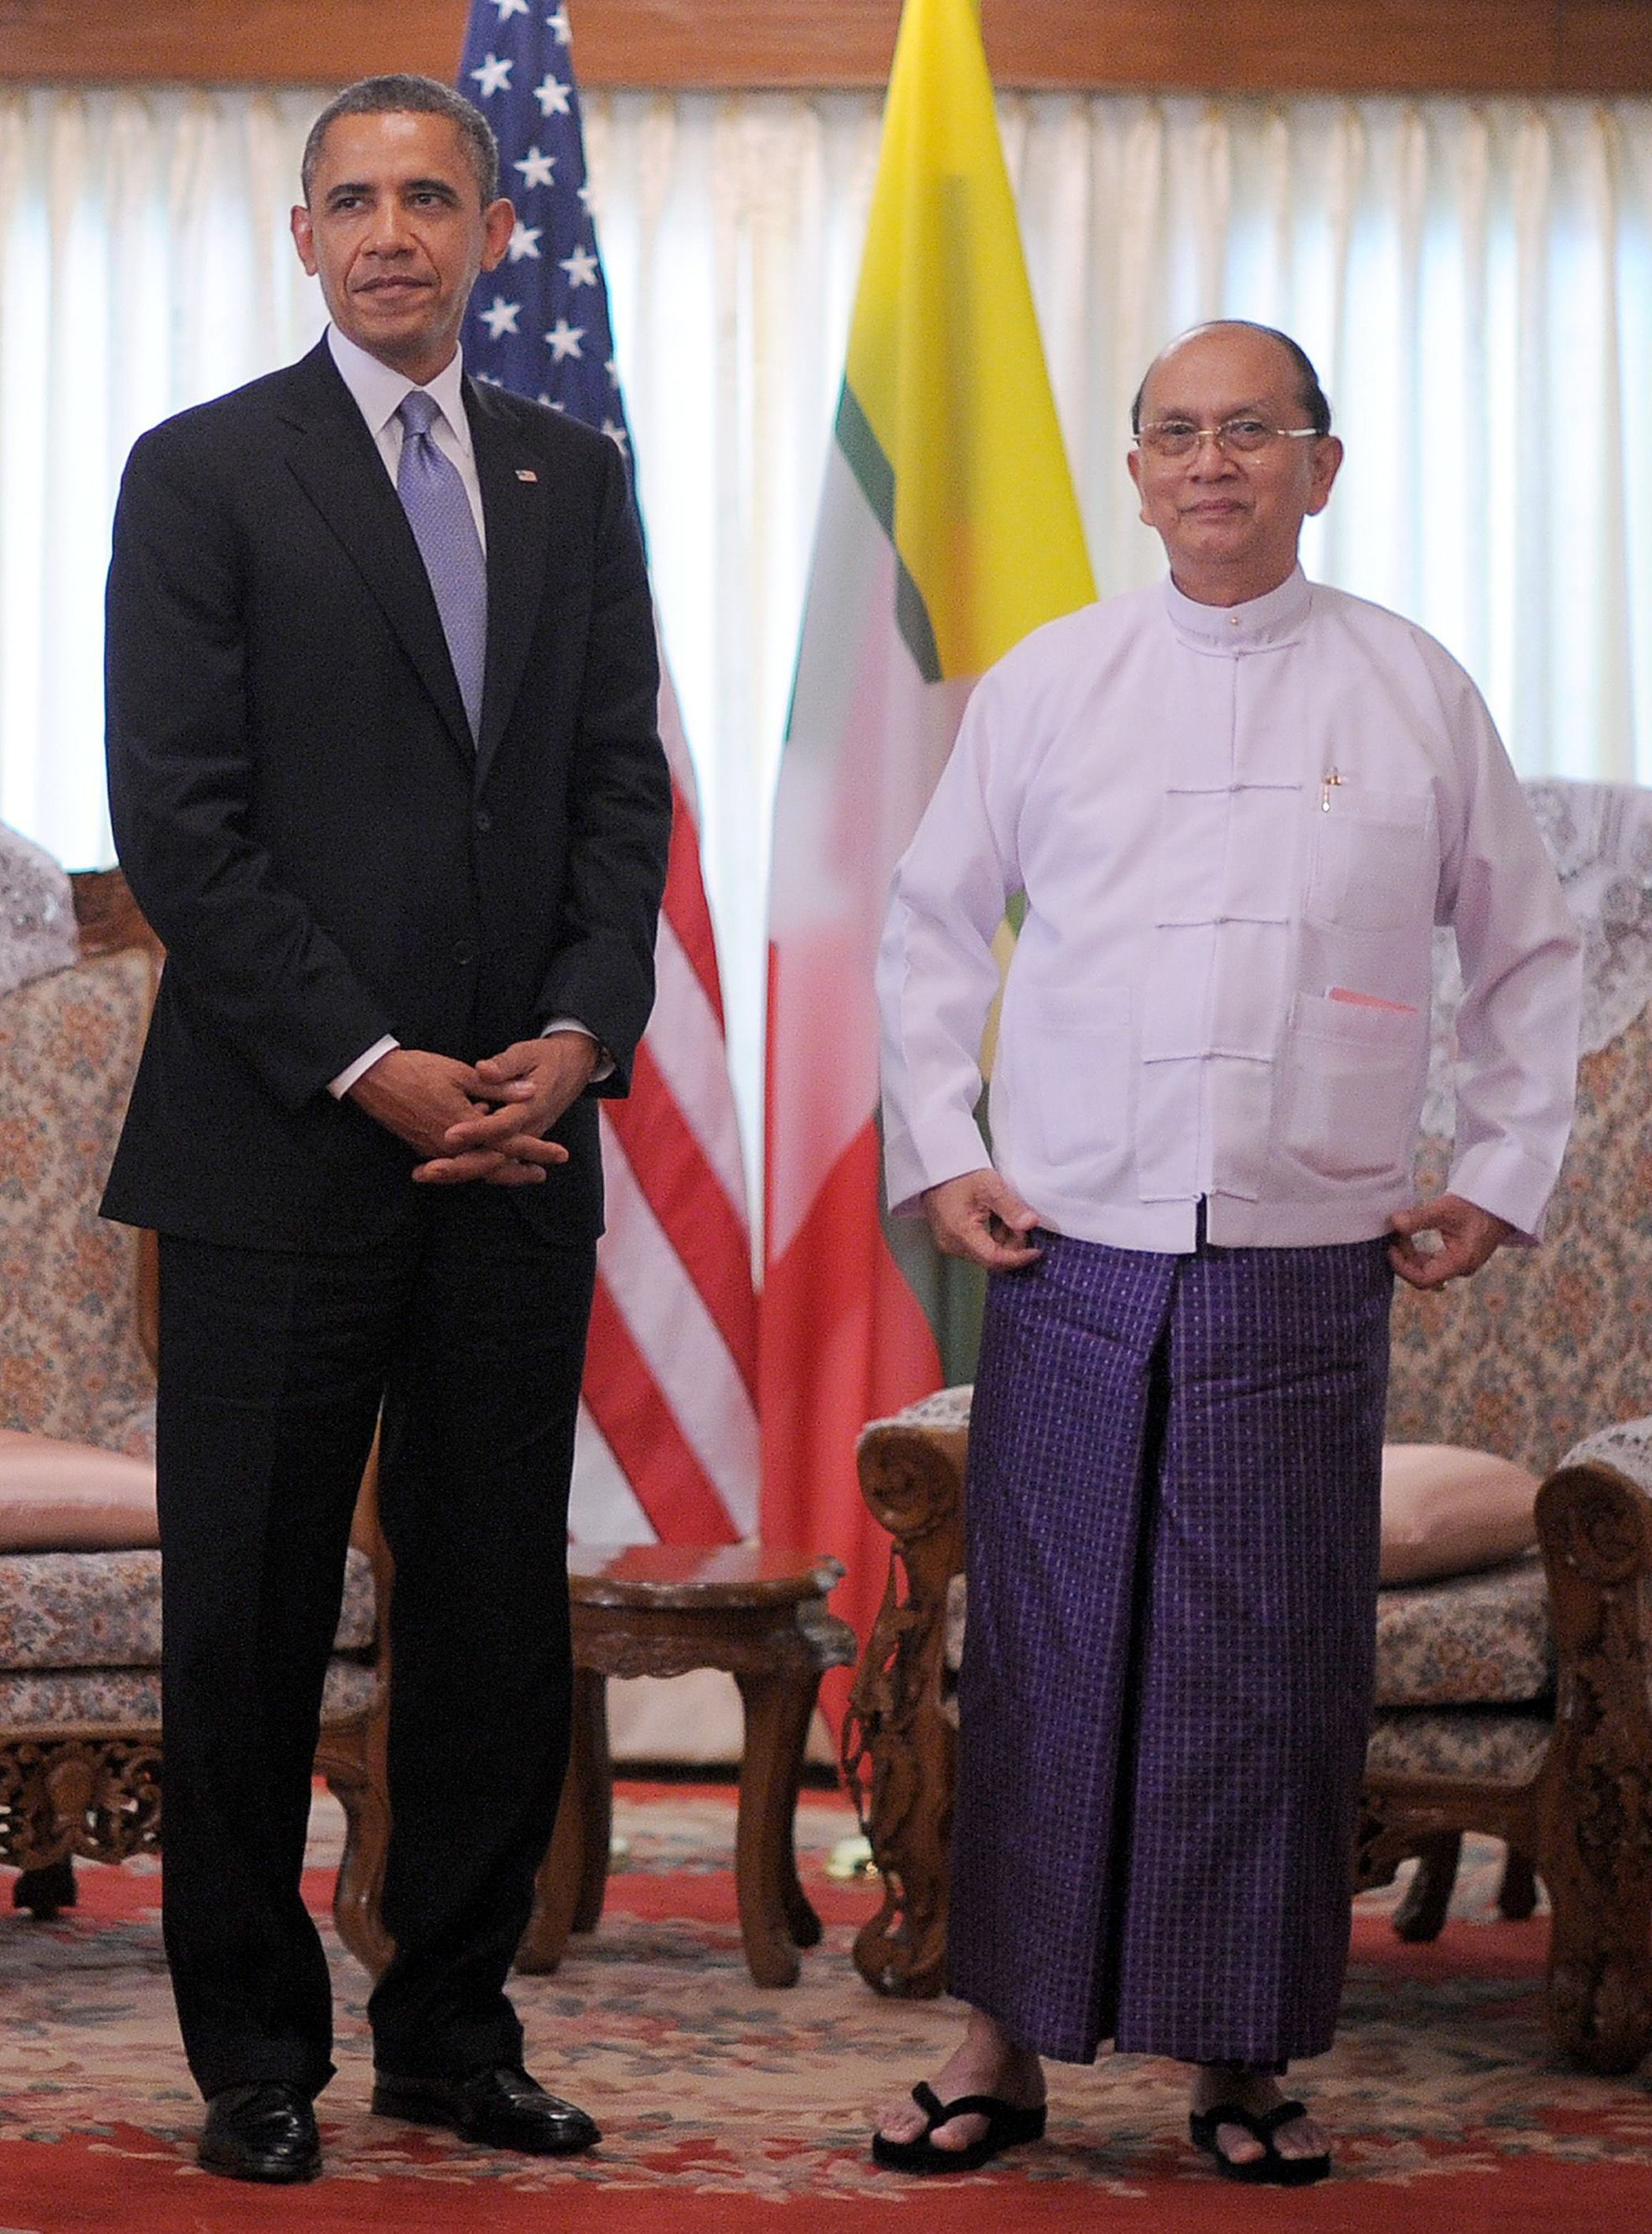 President And Thein Sein Of Myanmar Also Known As Burma Earlier Today In Yangon Image Jewel Samad Afp Getty Images